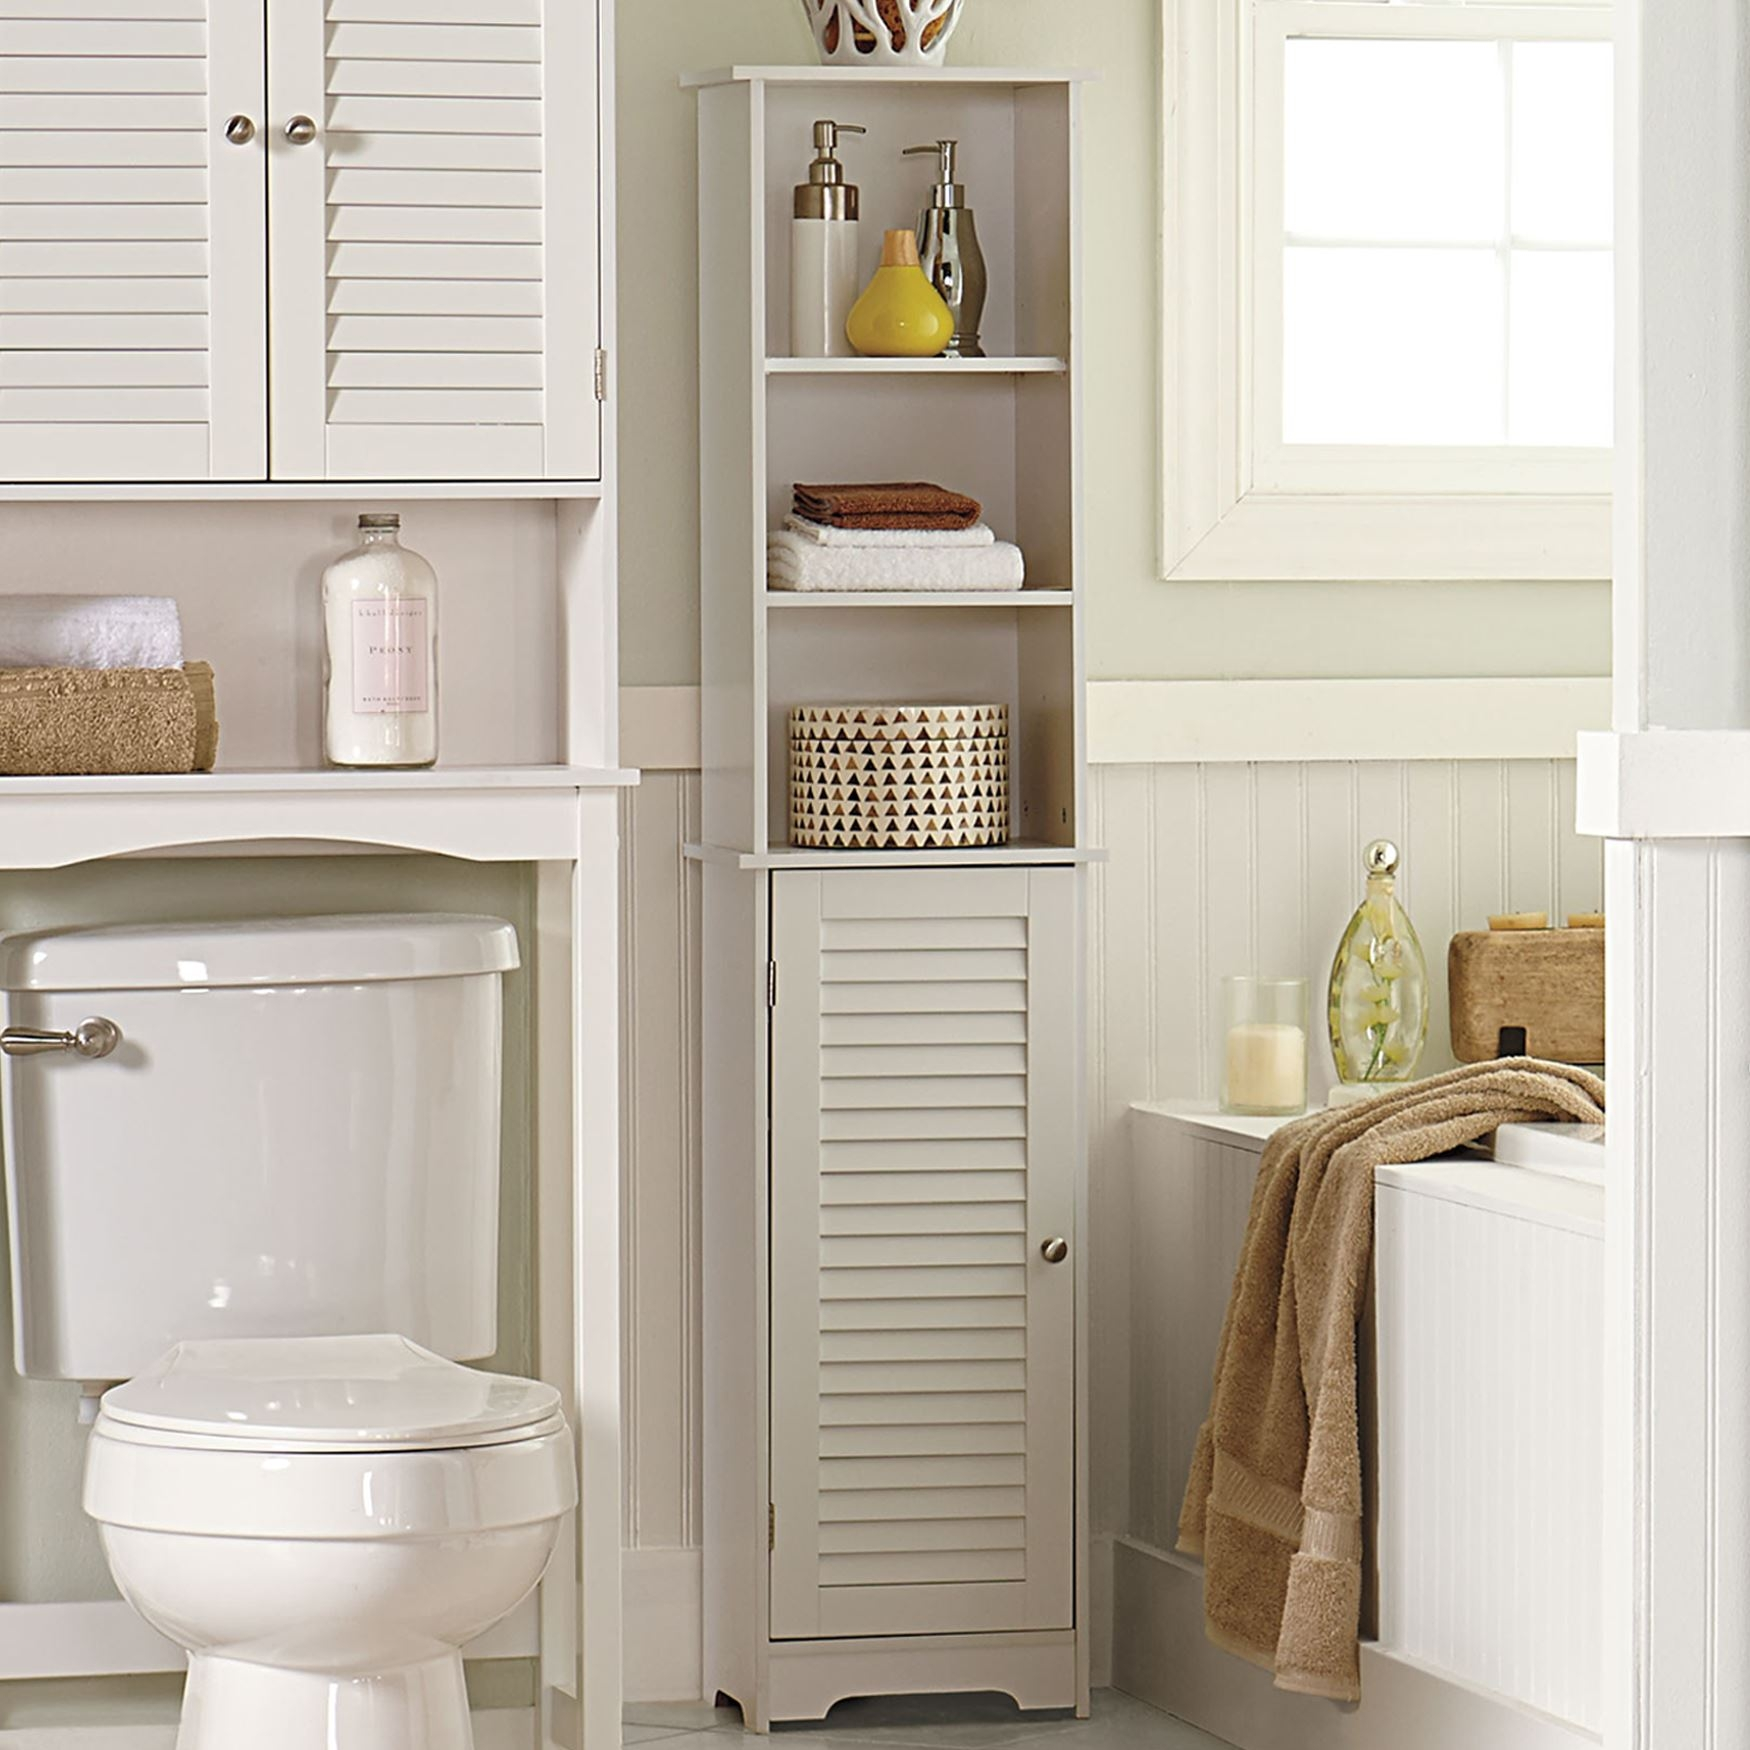 Tall Bathroom Storage Cabinets With Drawerstall thin bathroom storage white tall bathroom storage cabinets